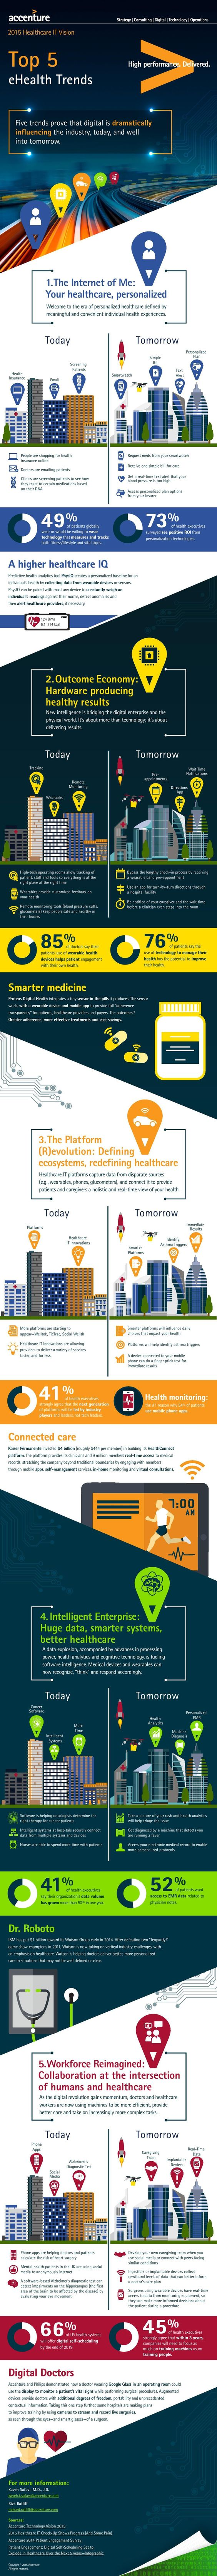 Accenture_Healthcare_Technology_Vision_2015_Infographic-page-001